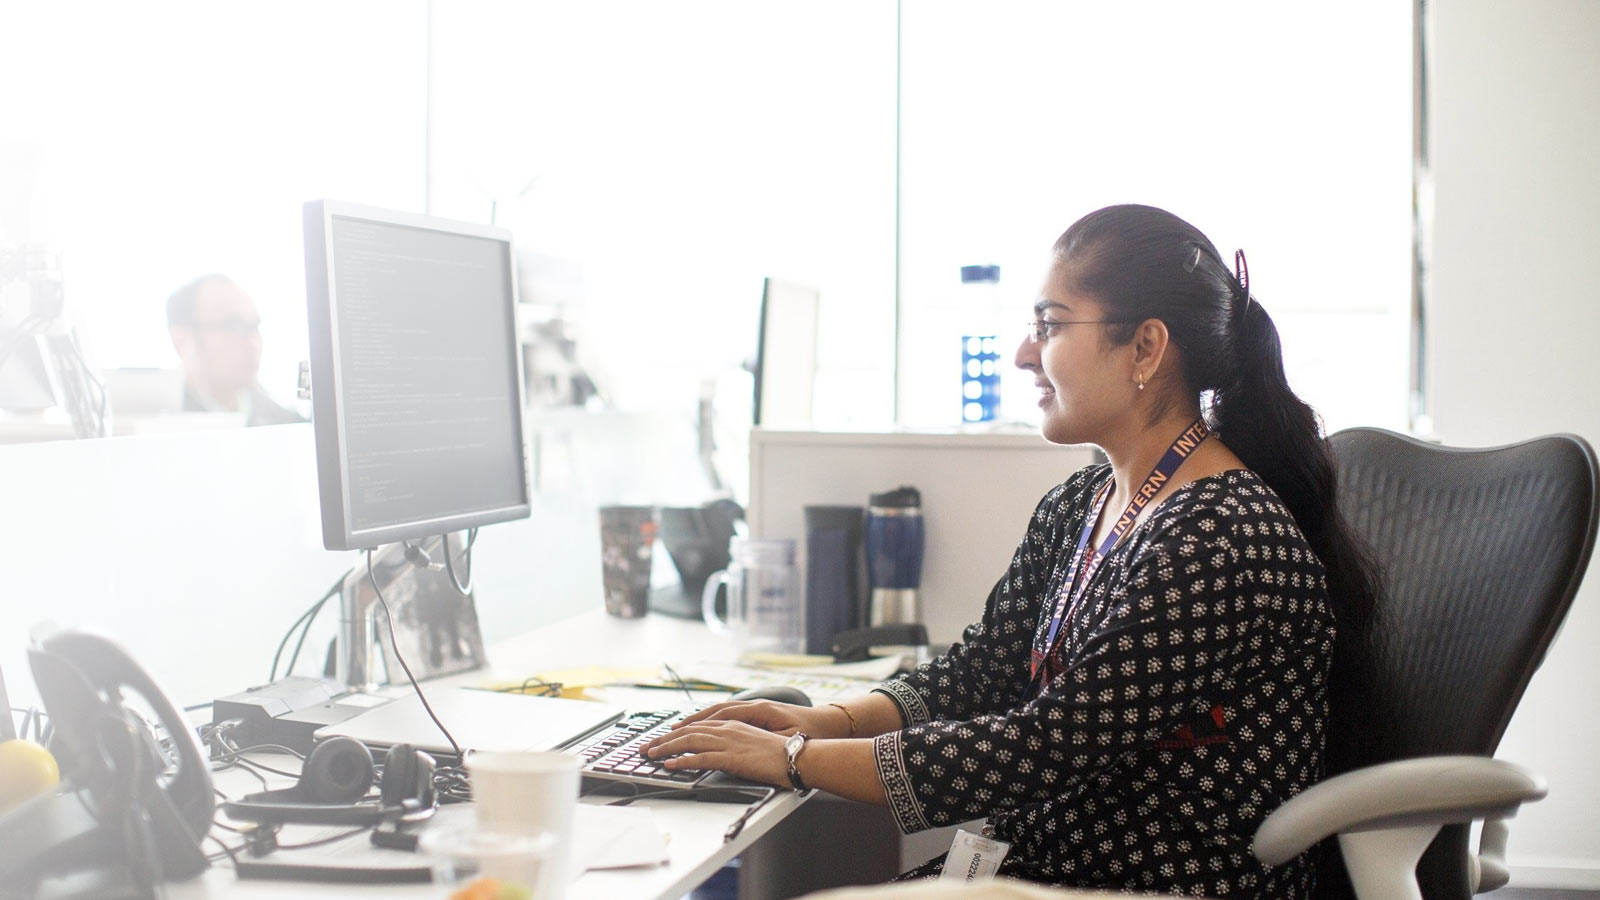 Woman sitting at a desk in an office, working on a computer.